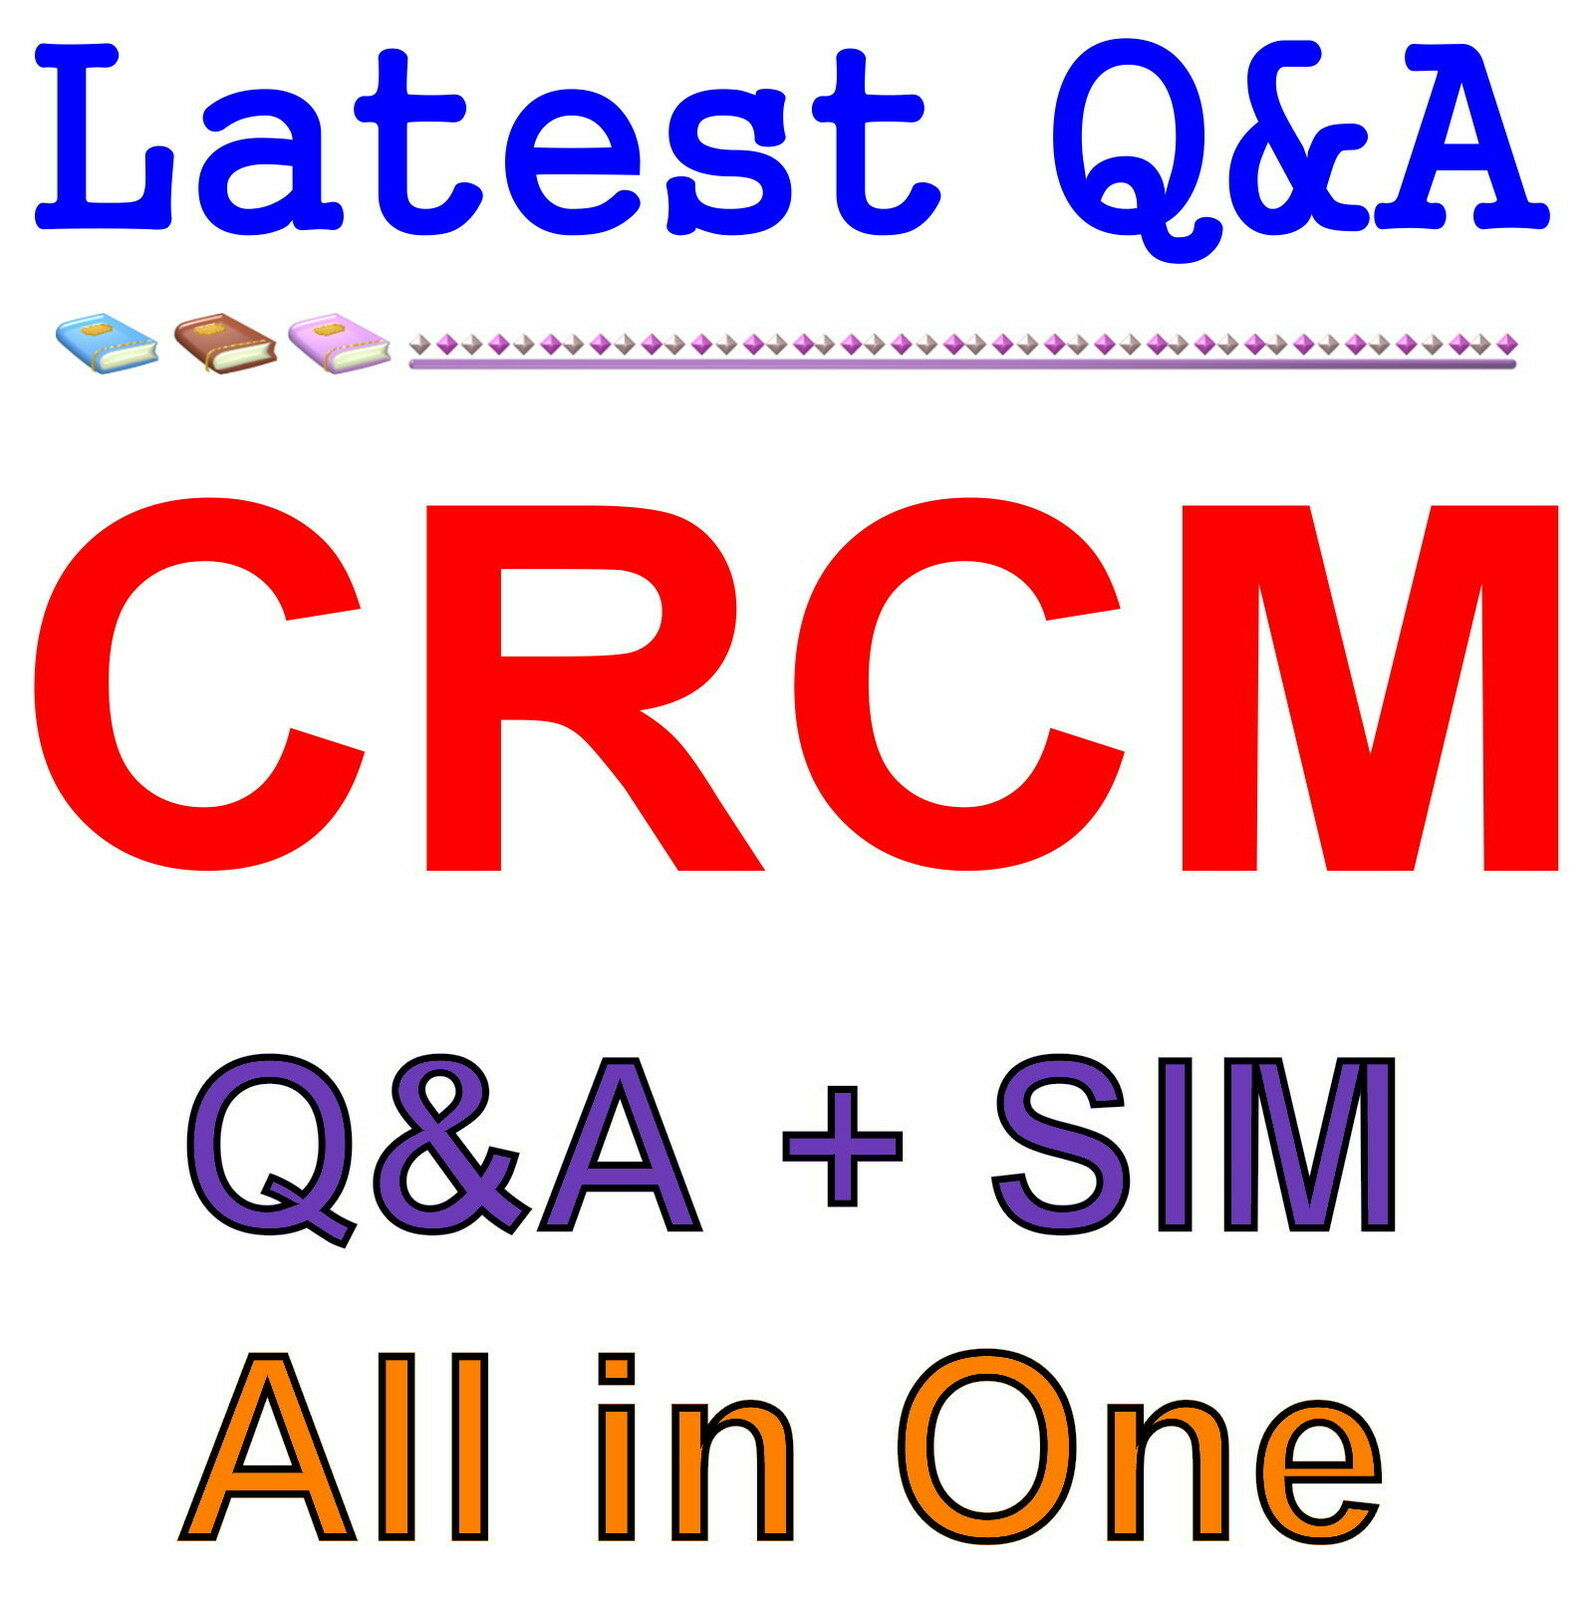 Certified regulatory compliance manager crcm exam qa pdfsim certified regulatory compliance manager crcm exam qa pdfsim 1betcityfo Images